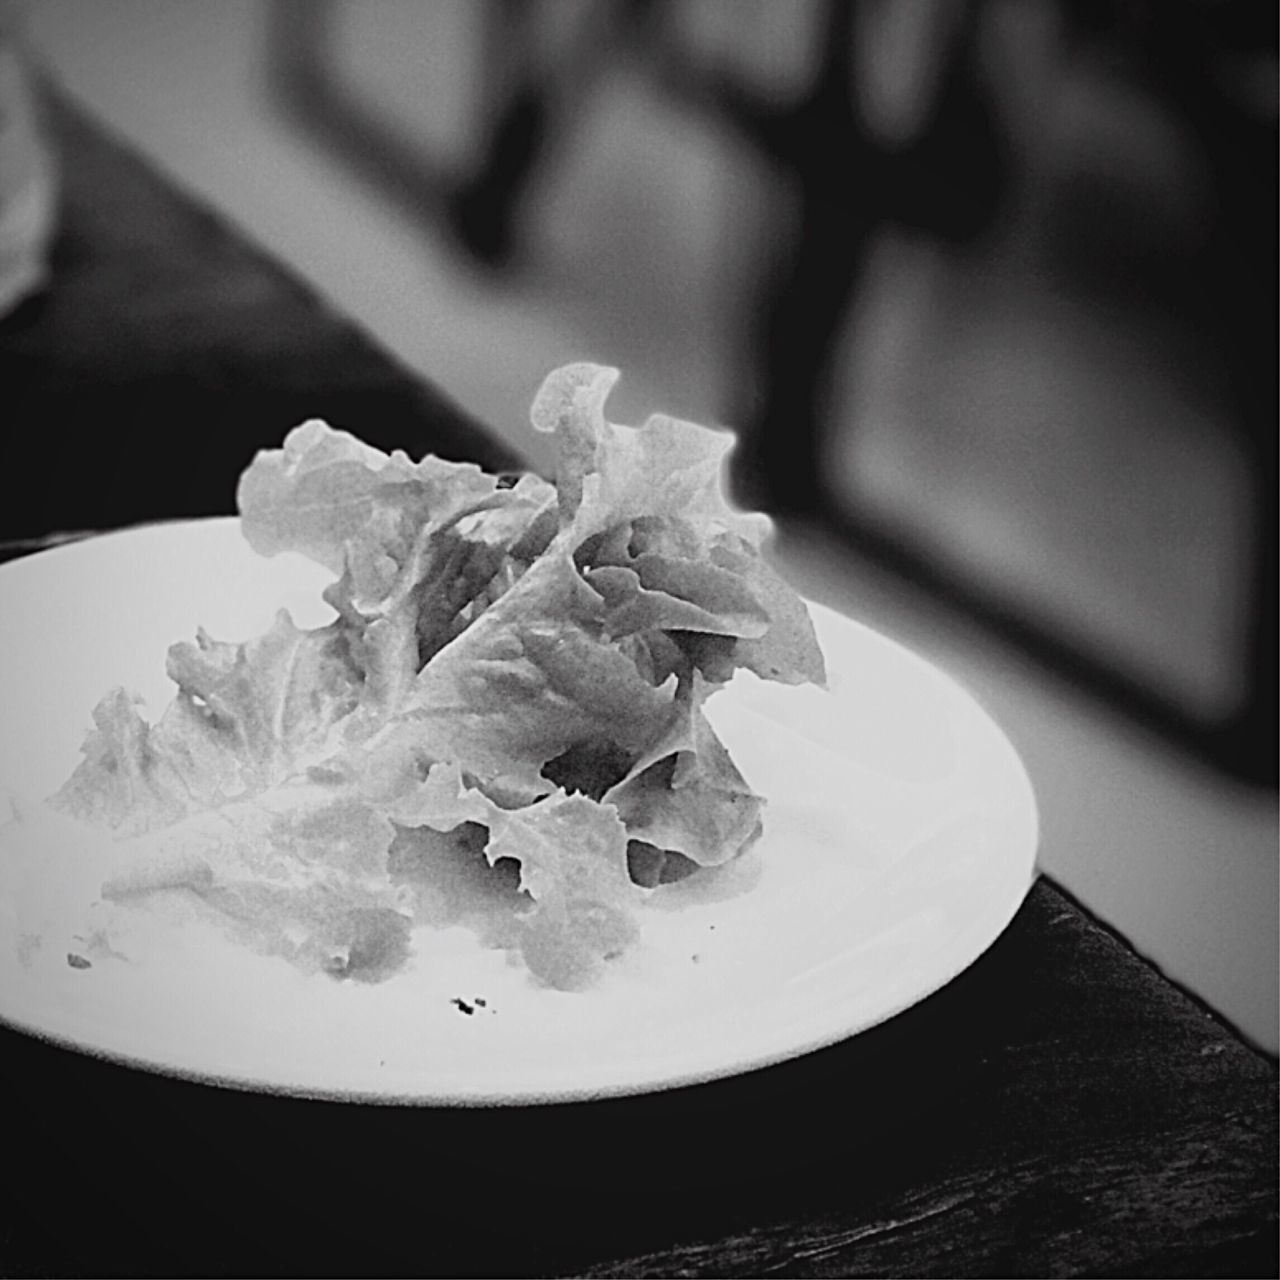 plate, table, food, food and drink, indoors, close-up, dessert, no people, sweet food, serving size, focus on foreground, indulgence, freshness, ready-to-eat, day